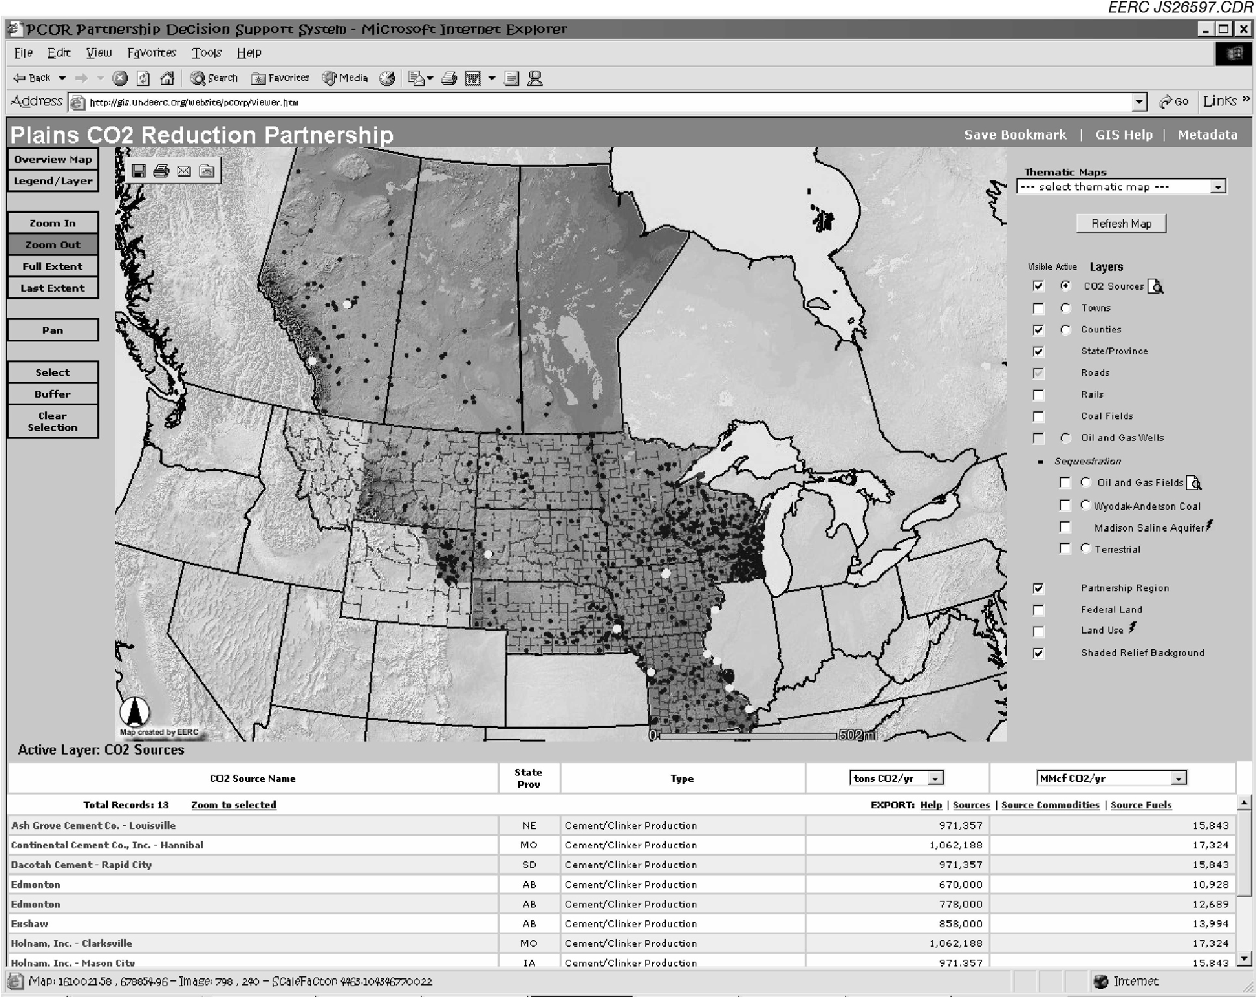 Figure 3. Screen capture from the EERC's DSS system in use as a source locator. The light dots shown on the PCOR Partnership region show the locations of the region's cement kilns. Data at the bottom correspond to the kilns.